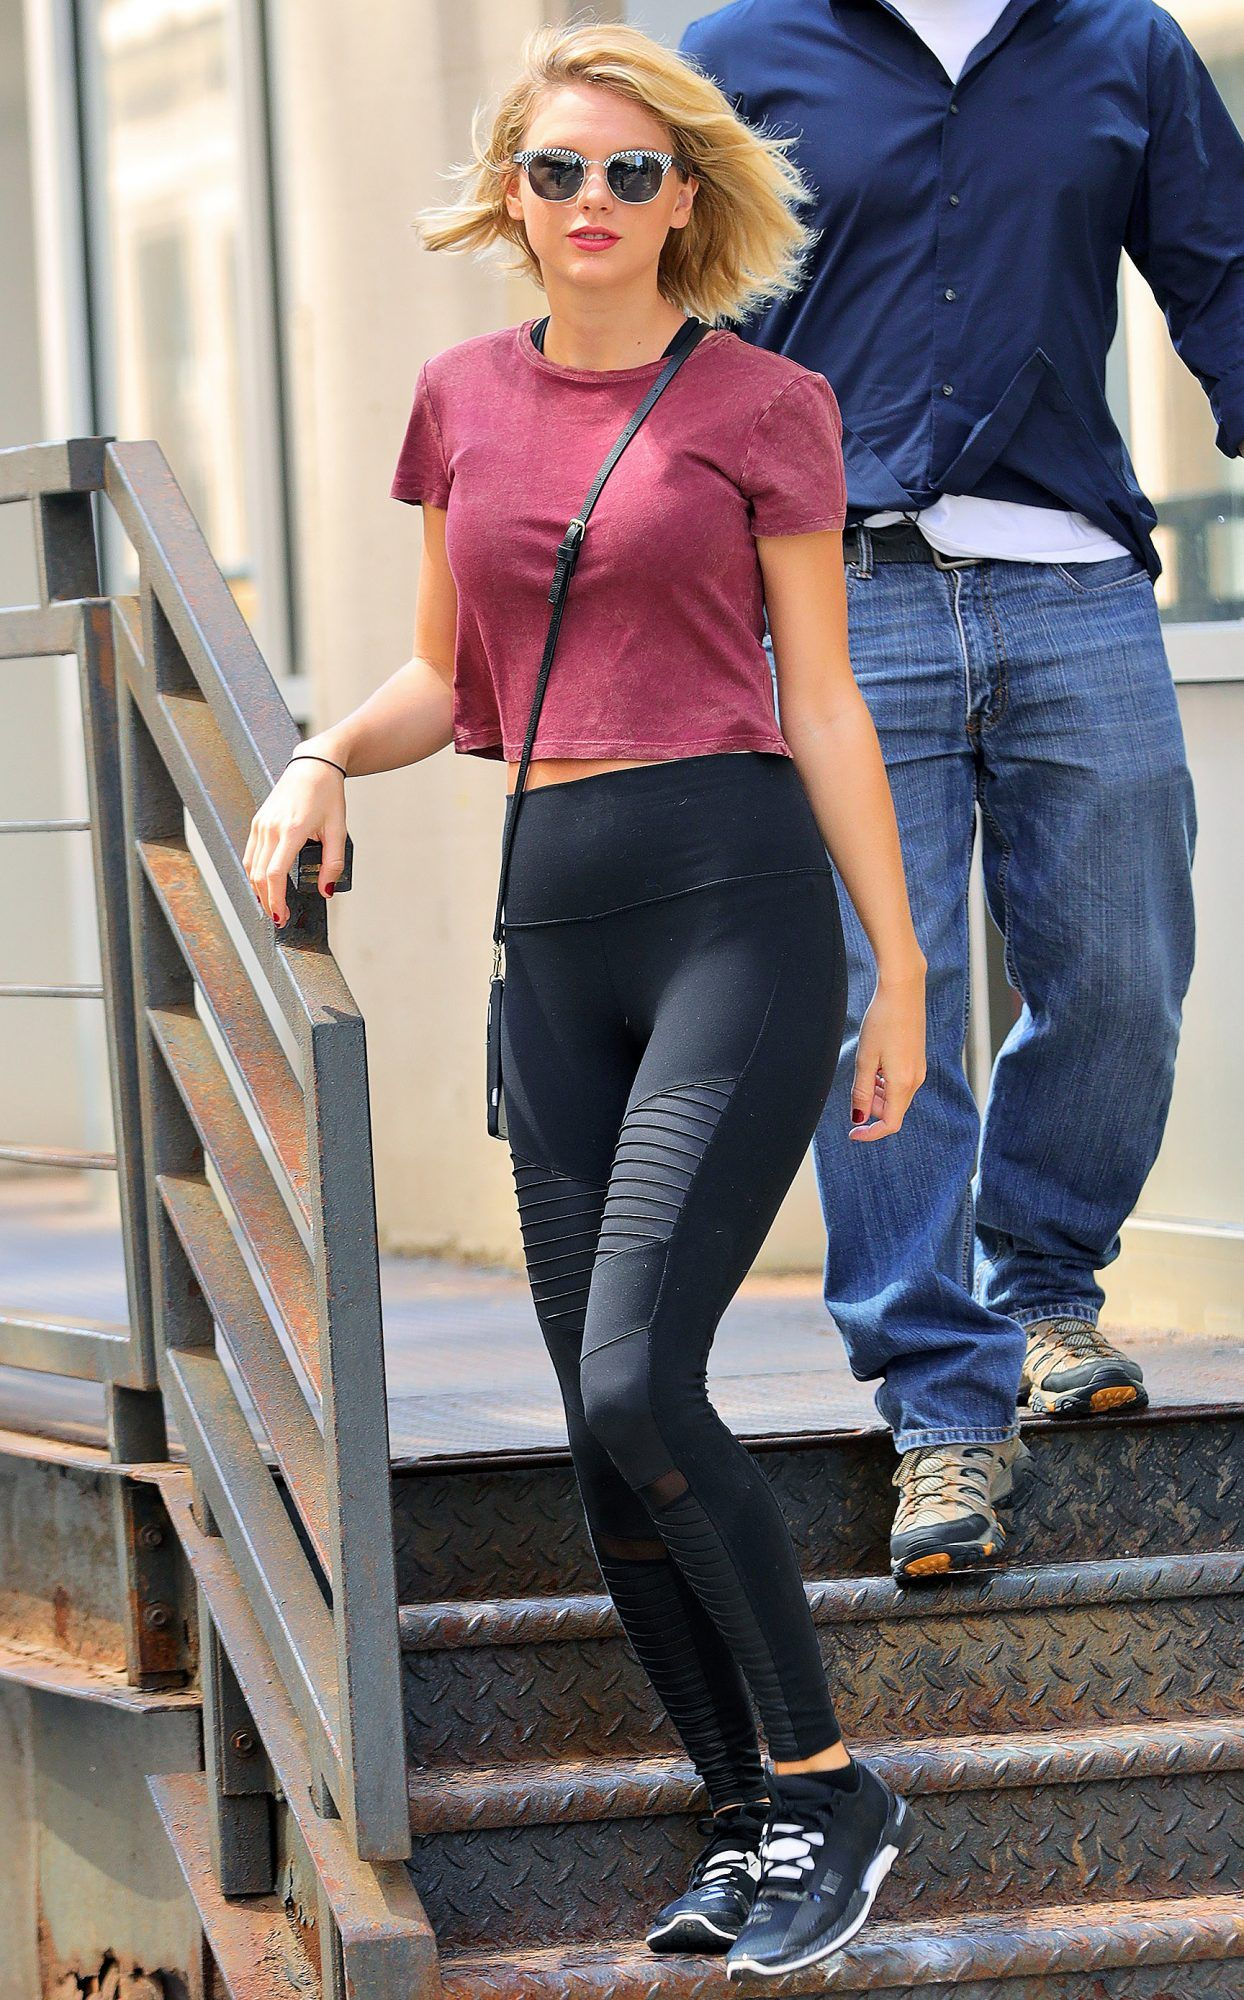 31 actual outfits you can wear with leggings inspired by